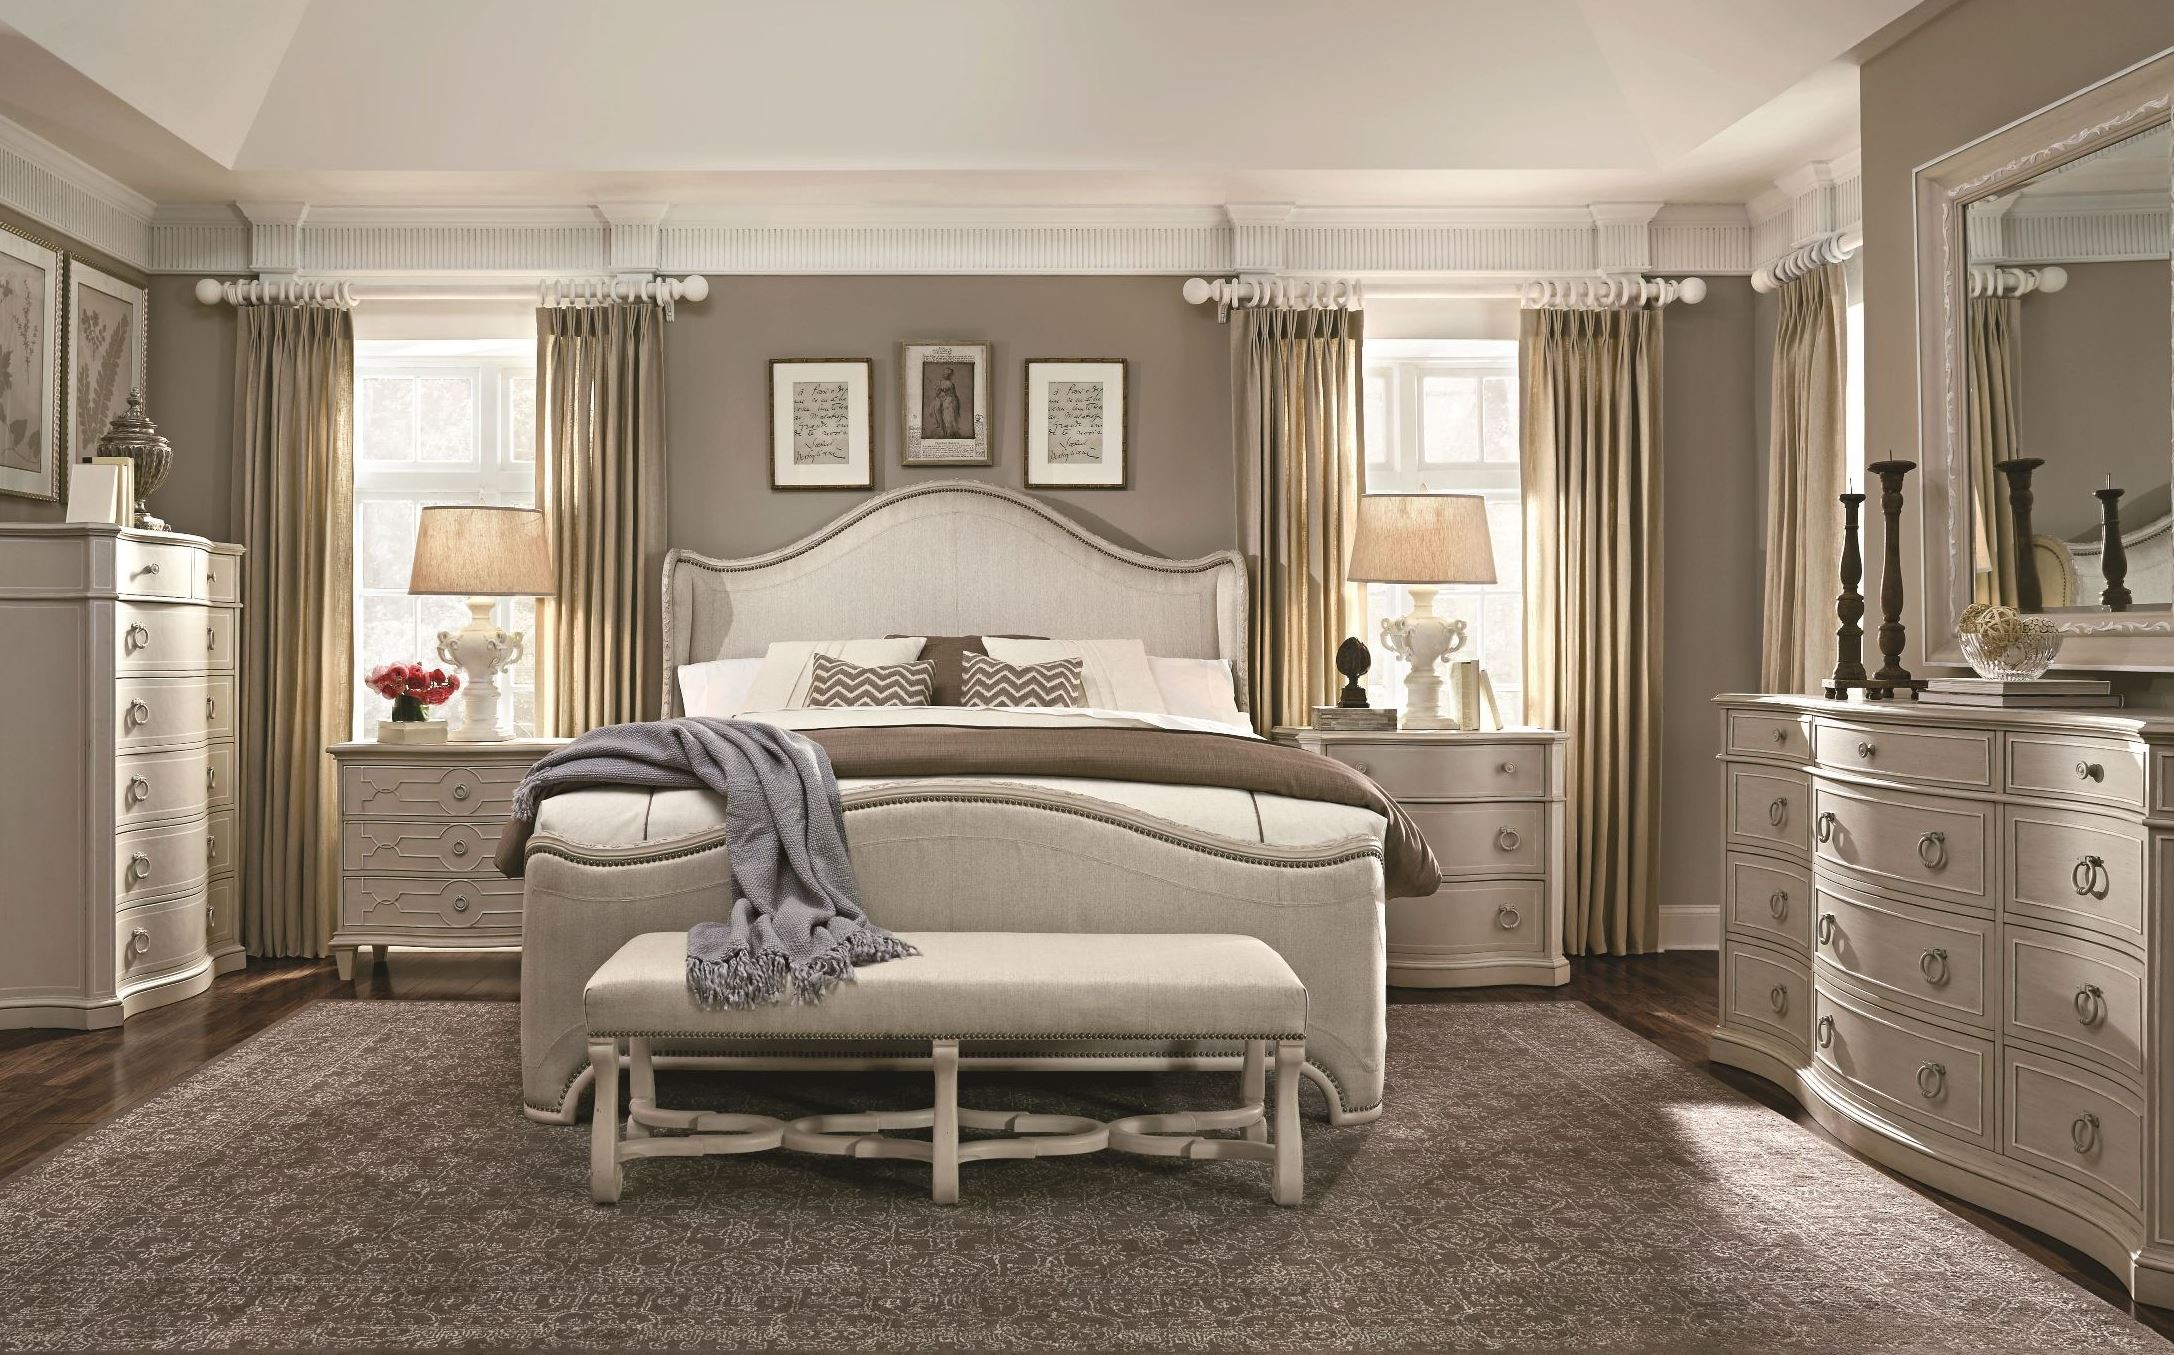 grey bedroom chair next power wheelchair batteries medicare chateaux upholstered shelter set from art